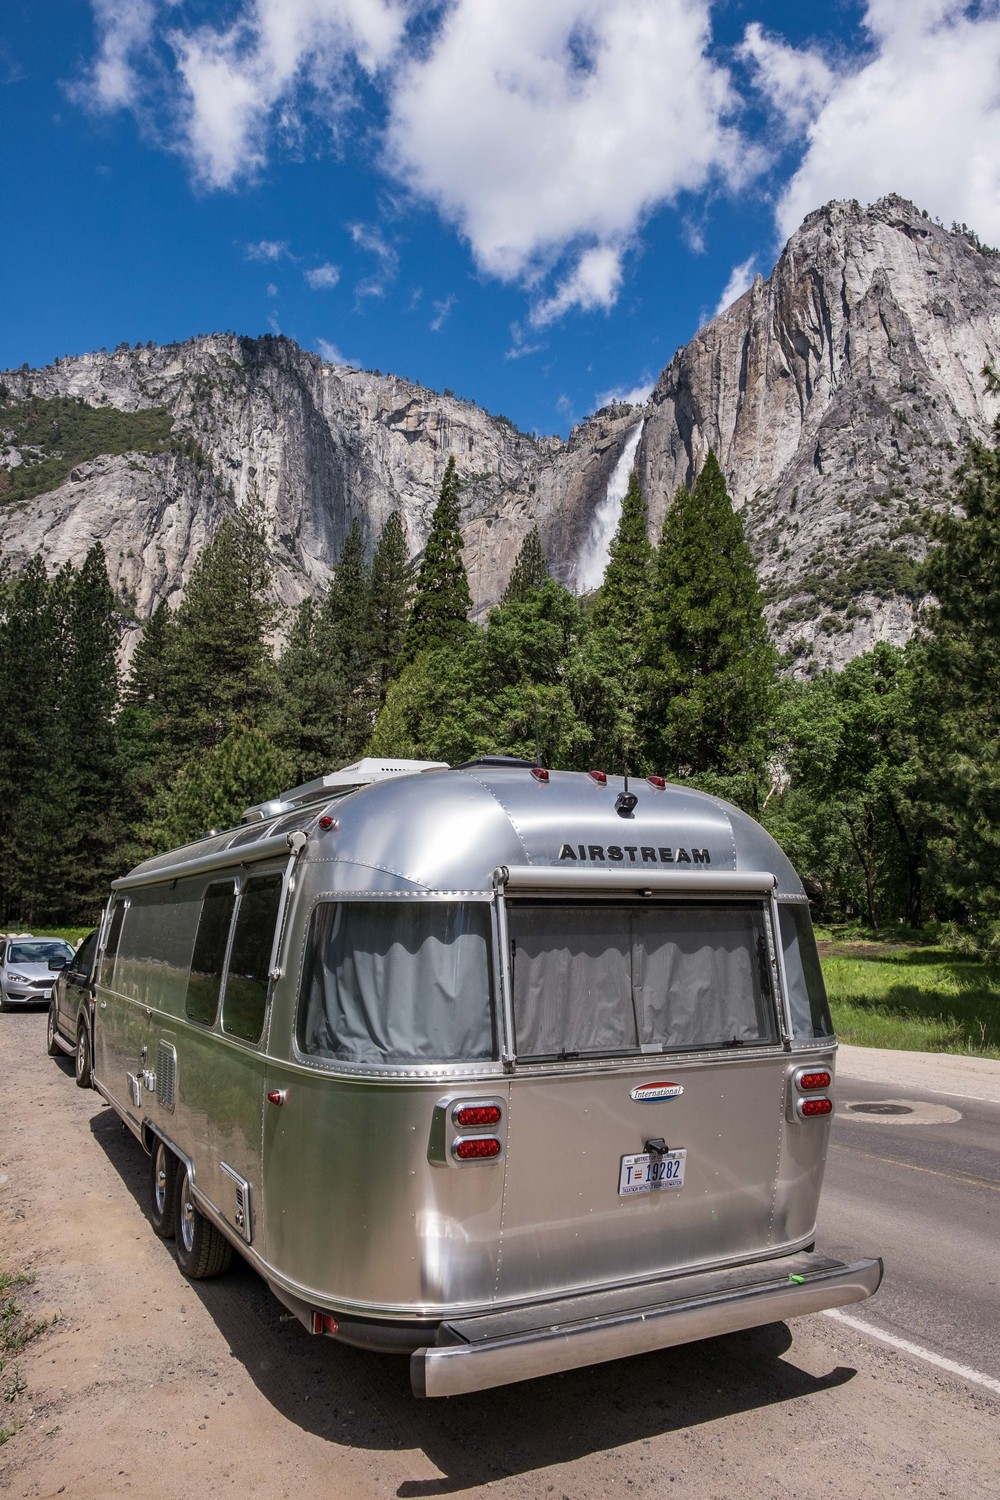 On the road again! We <3 Yosemite.